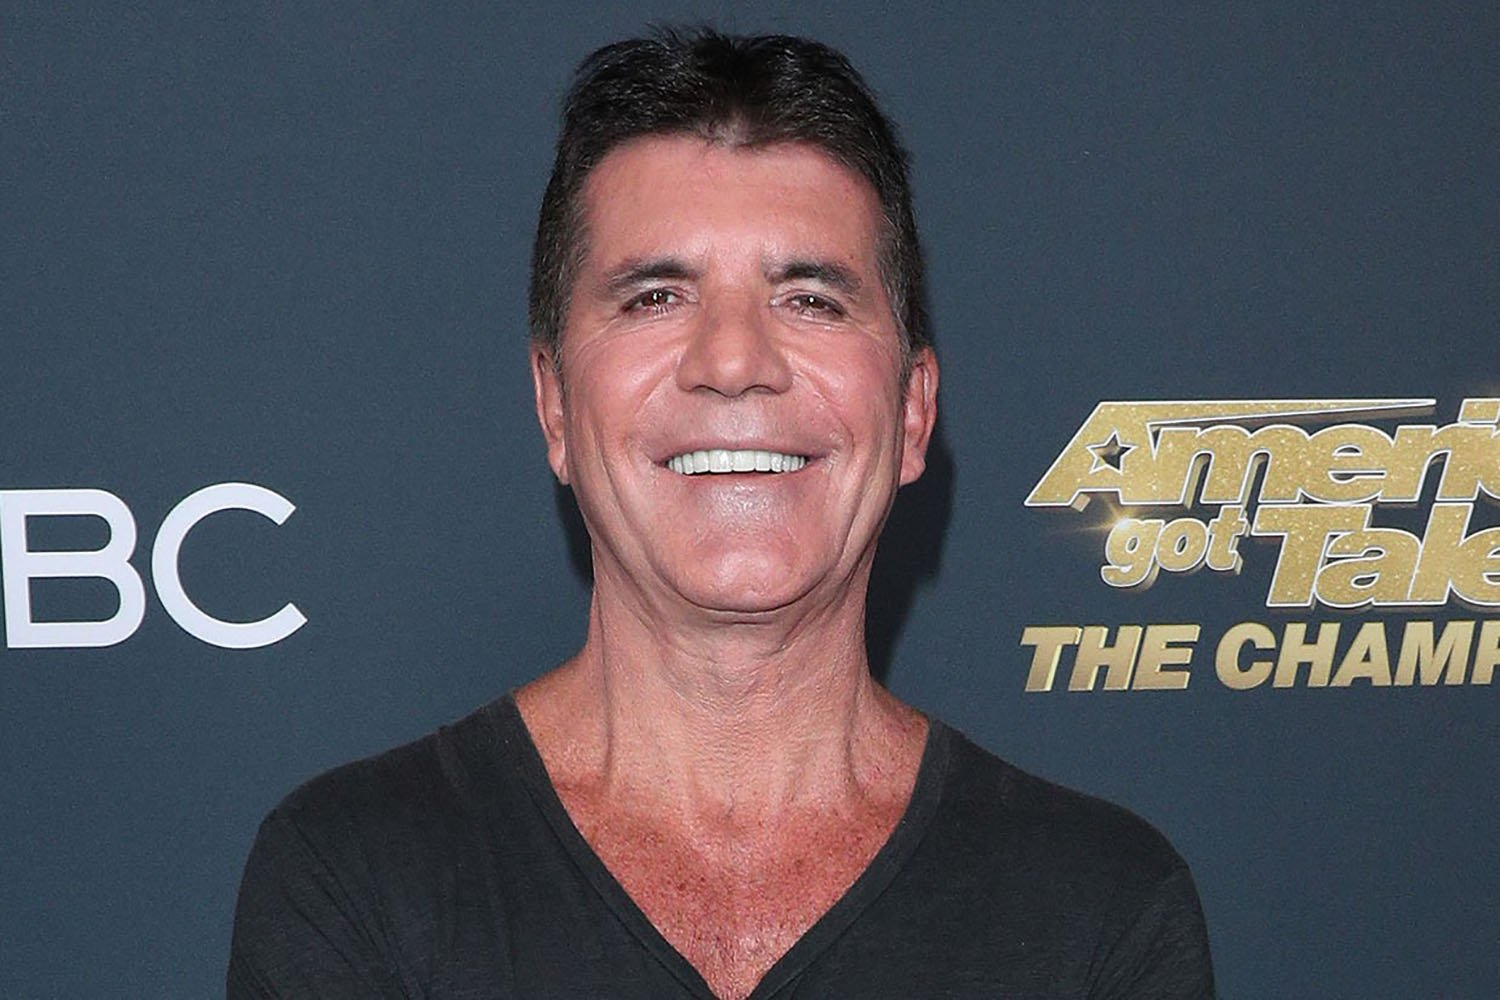 Simon Cowell announces new career move after dramatic weight loss